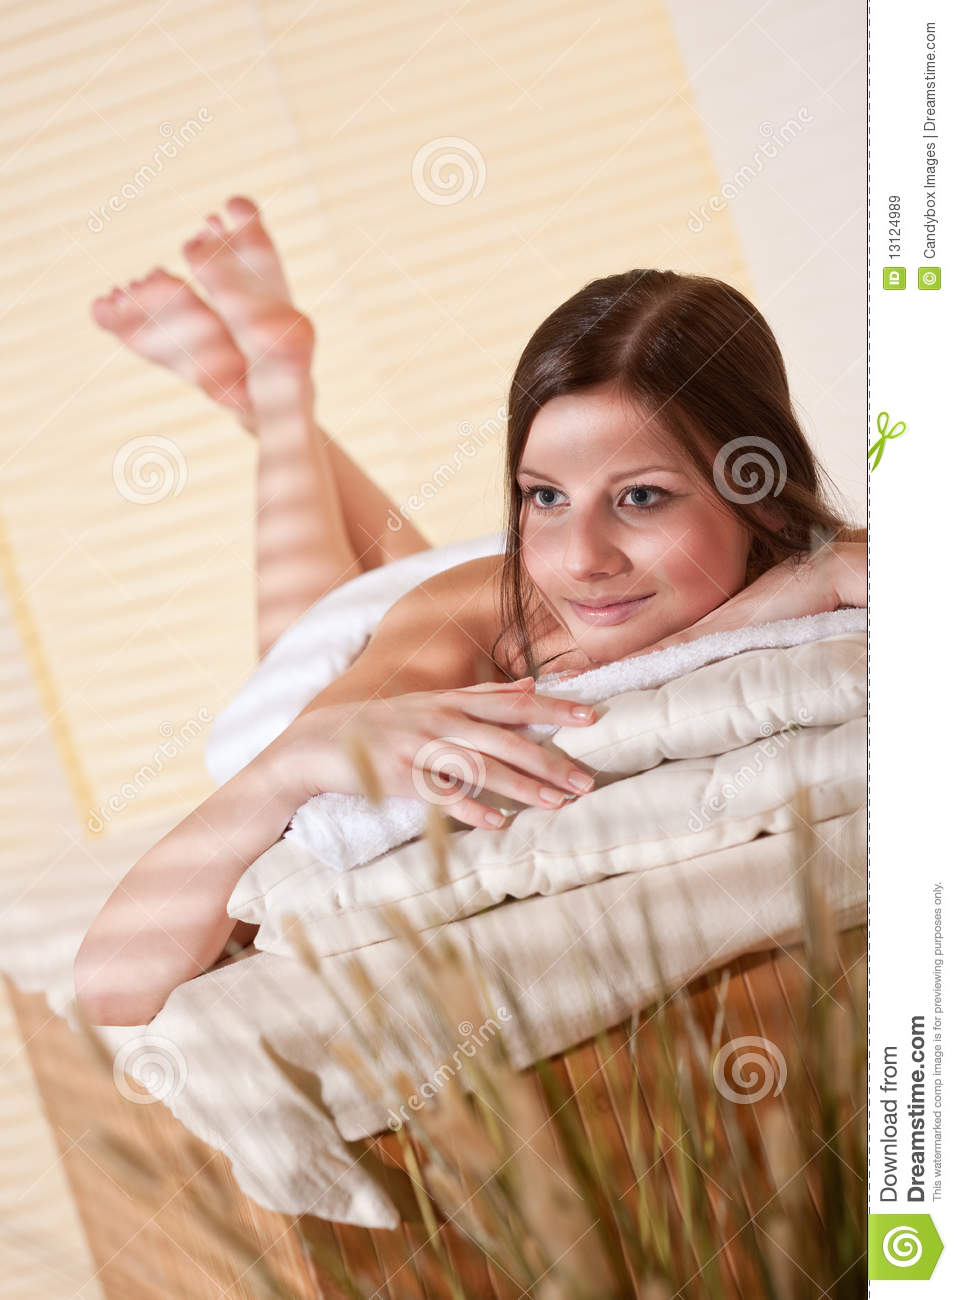 Spa young woman at wellness therapy royalty free stock for Salon younga